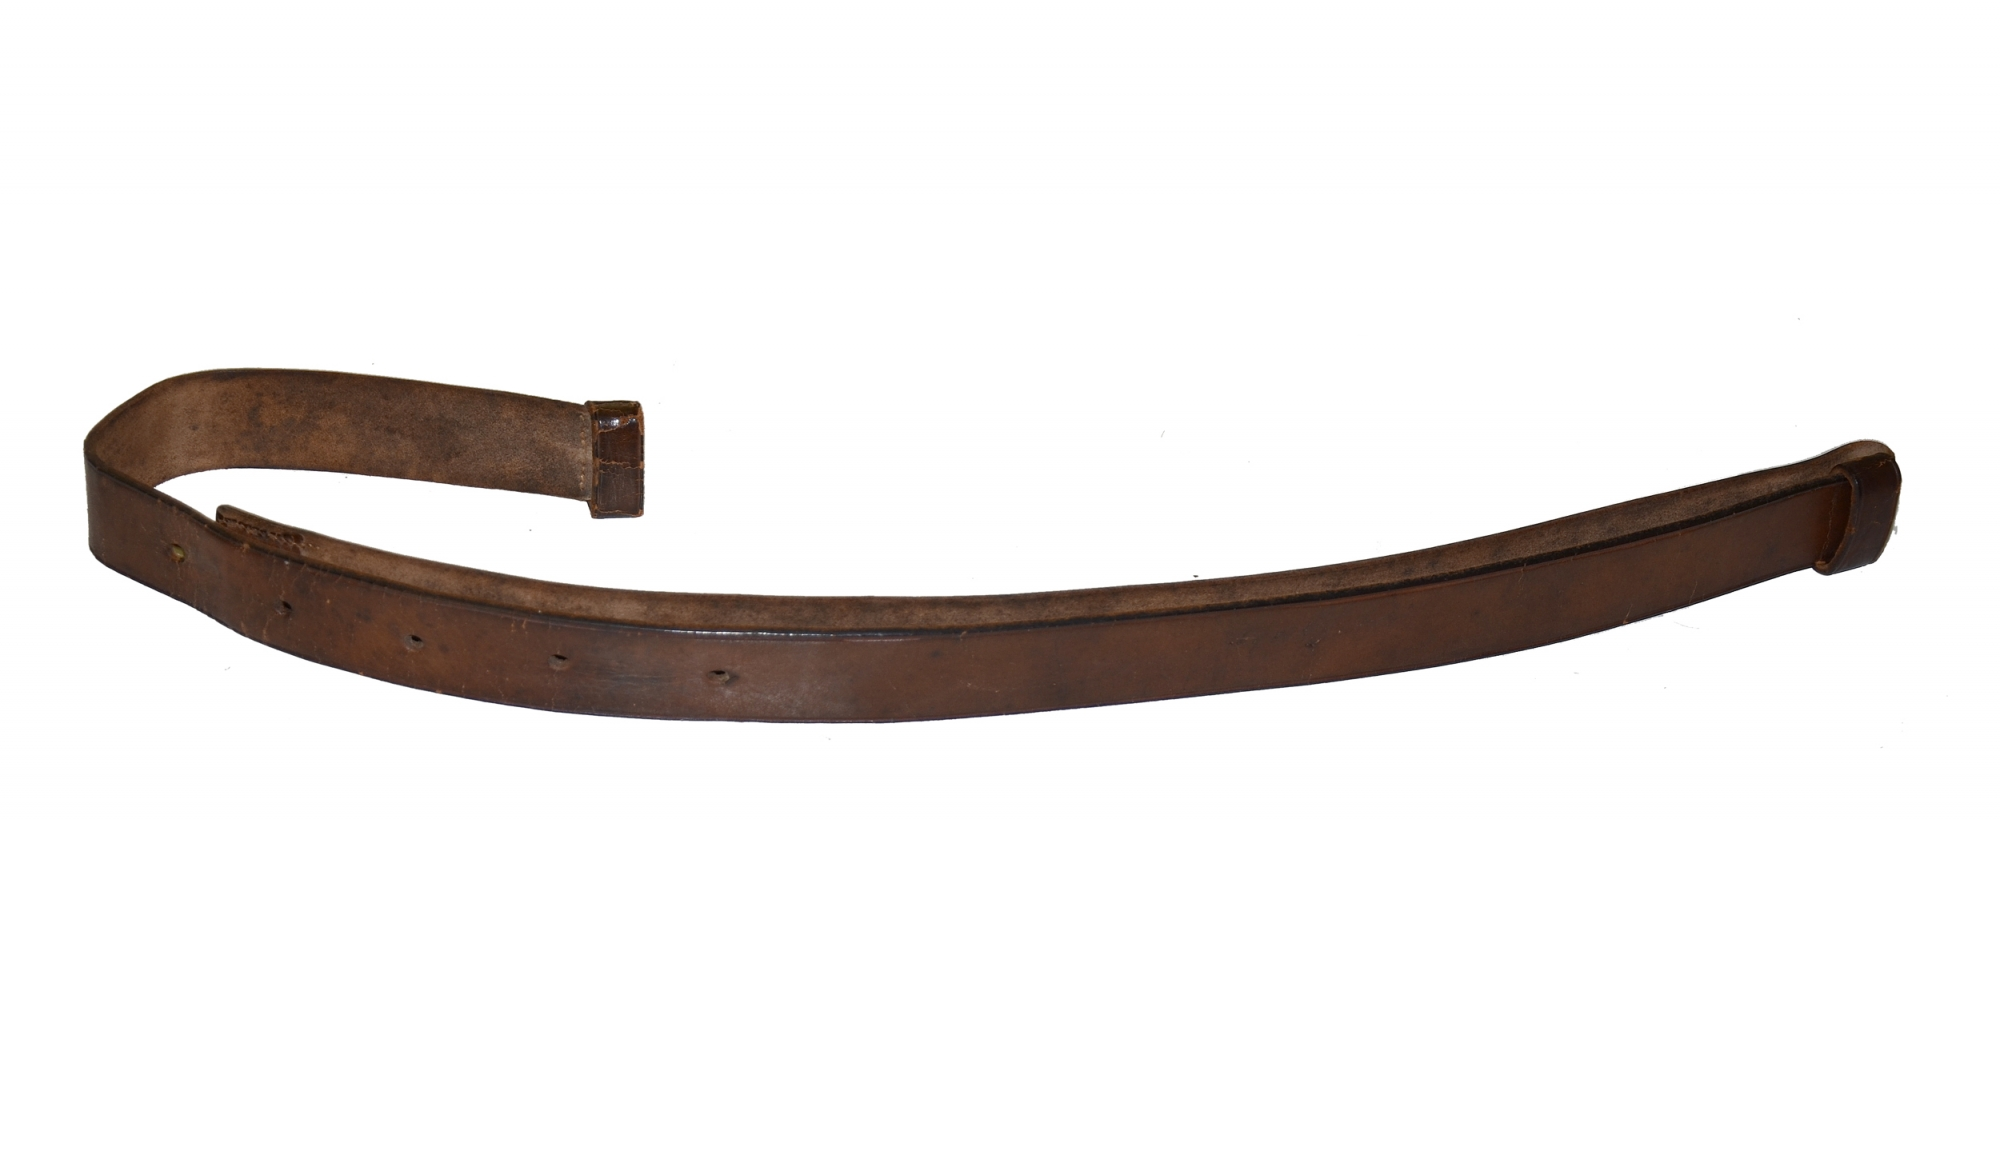 CIVIL WAR FEDERAL REGULATION RIFLE-MUSKET SLING